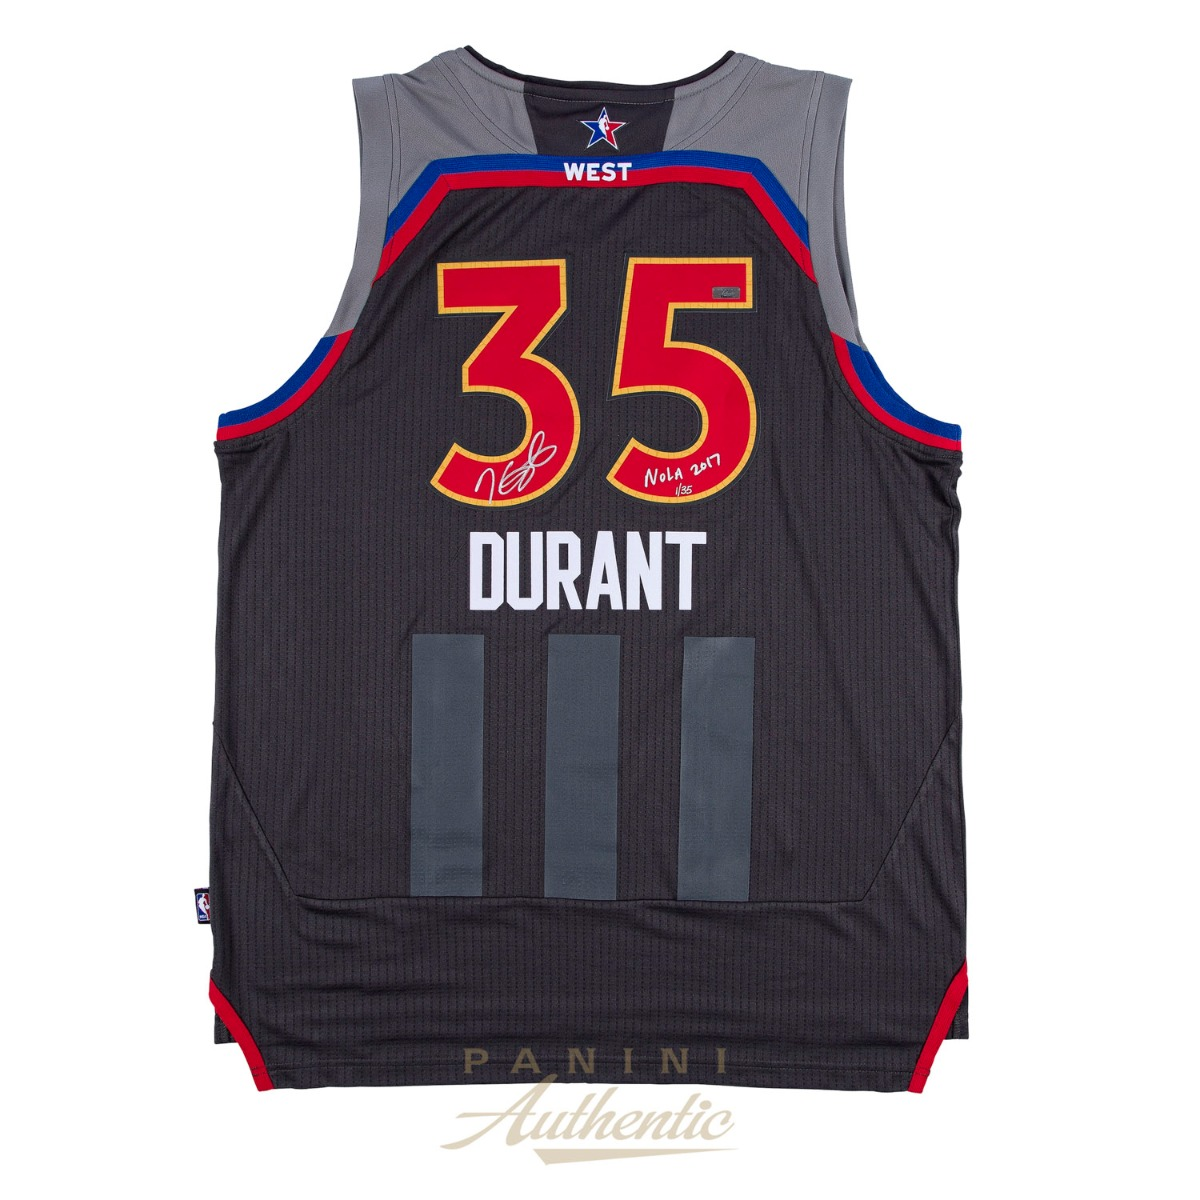 online store eac49 0e9c8 Kevin Durant Autographed 2017 All Star Swingman Jersey with ...